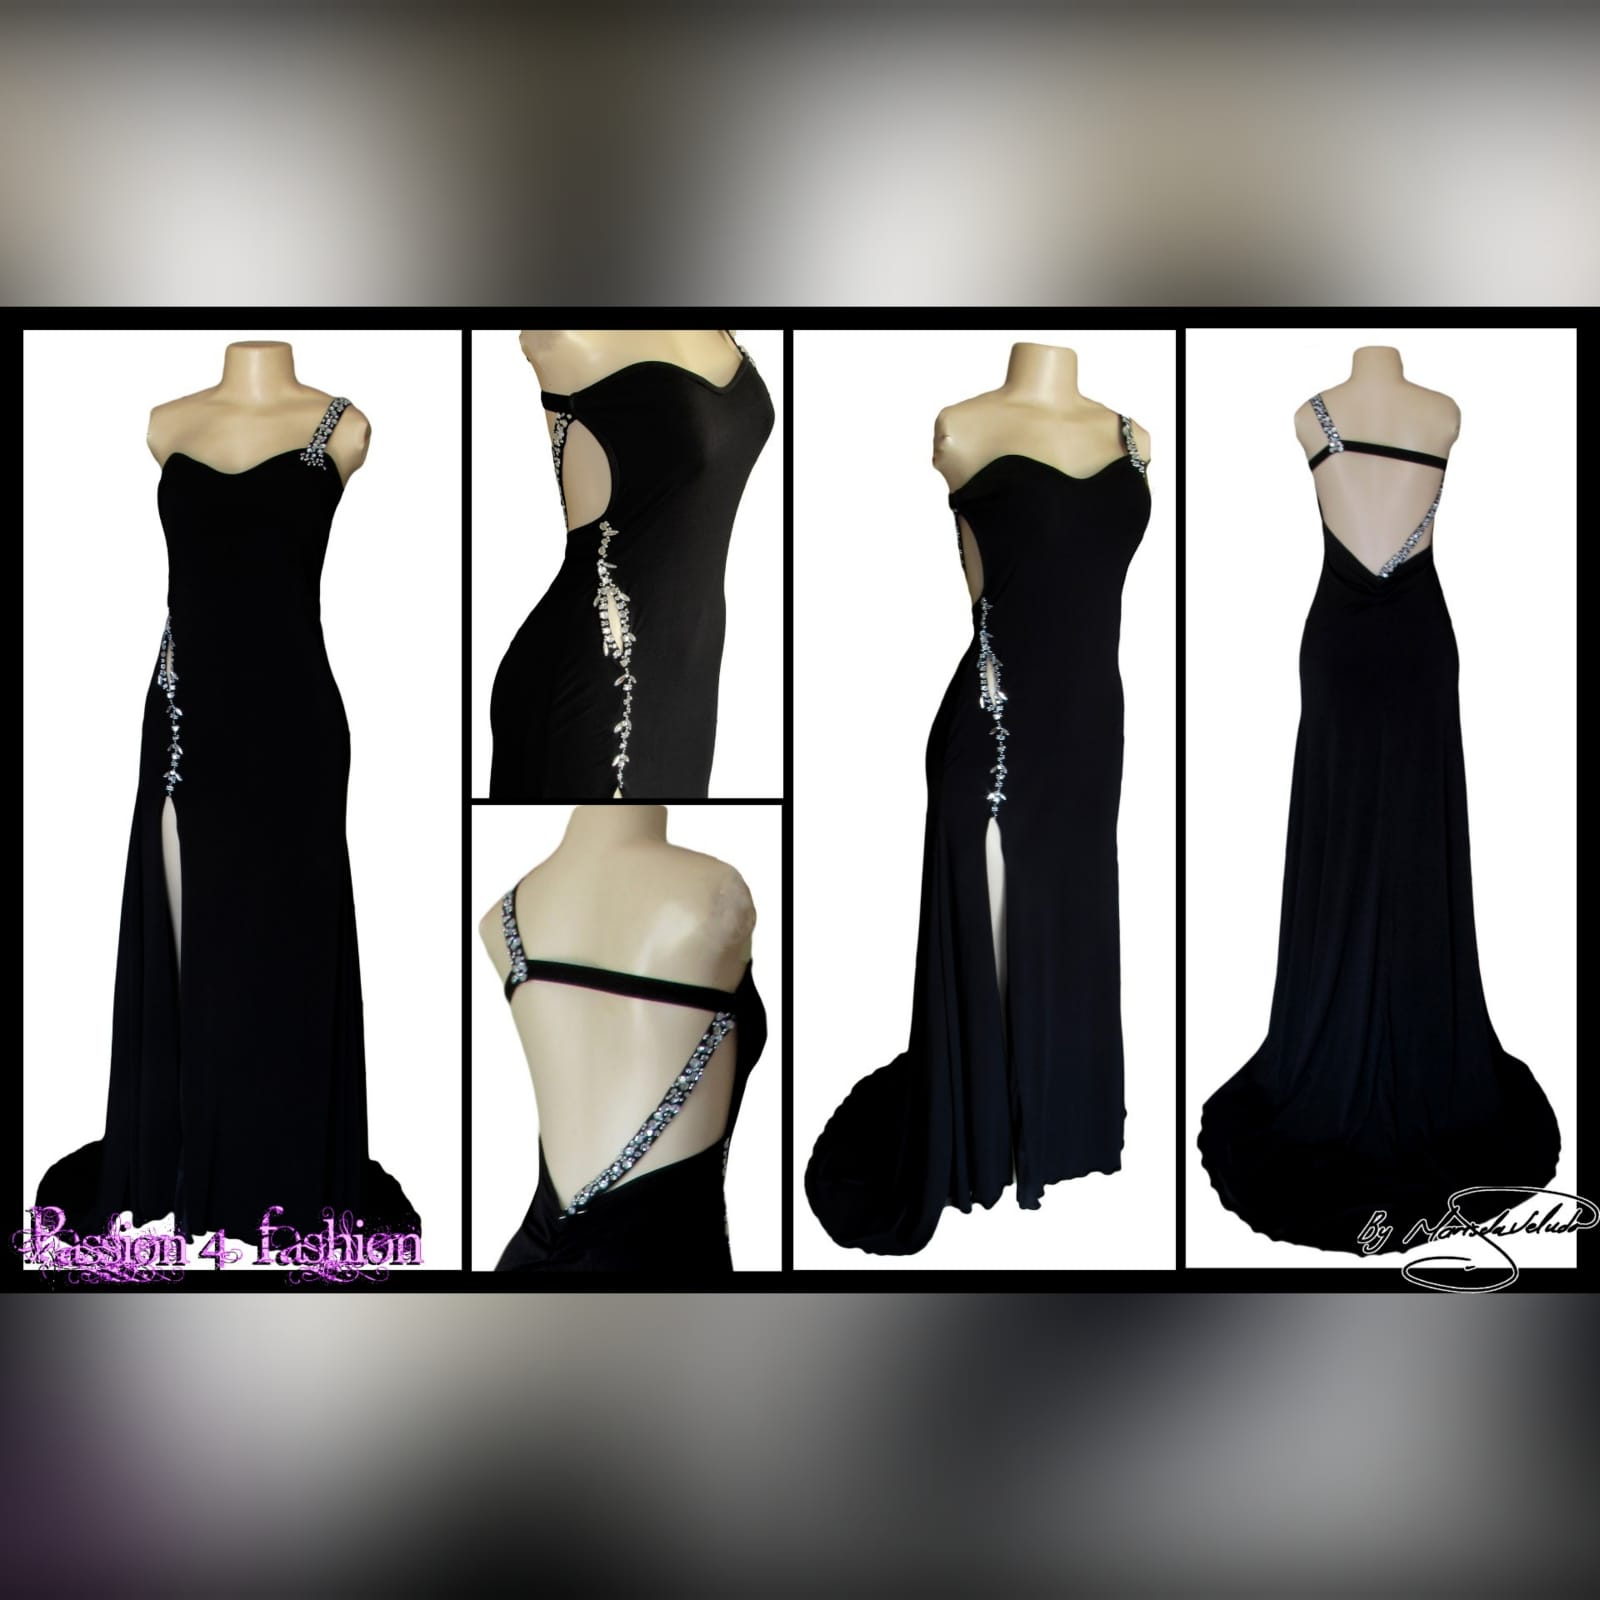 Black long formal dress with a low open back 2 black long formal dress with a low open back. Shoulder strap design detailed with silver beads and a slit.